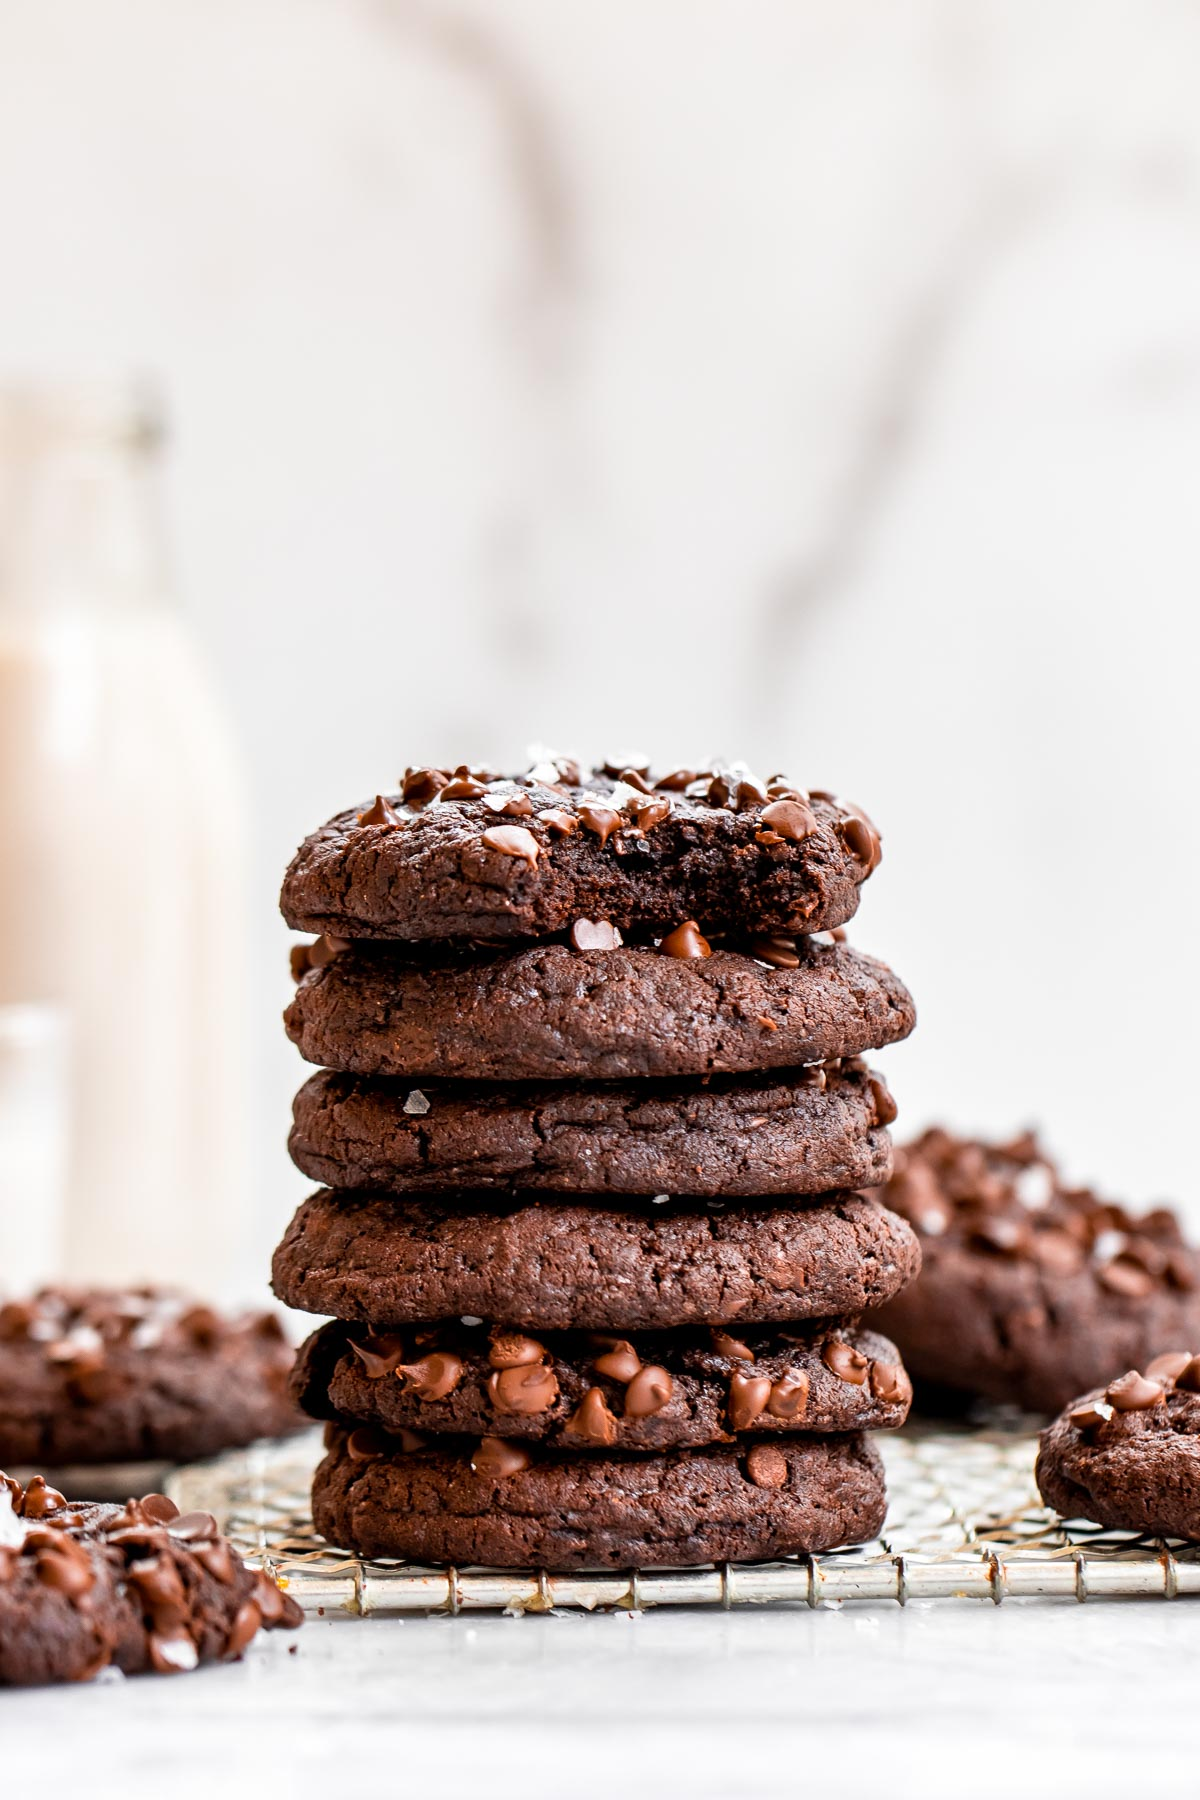 Six vegan chocolate cookies stacked on top of each other with milk in the background.